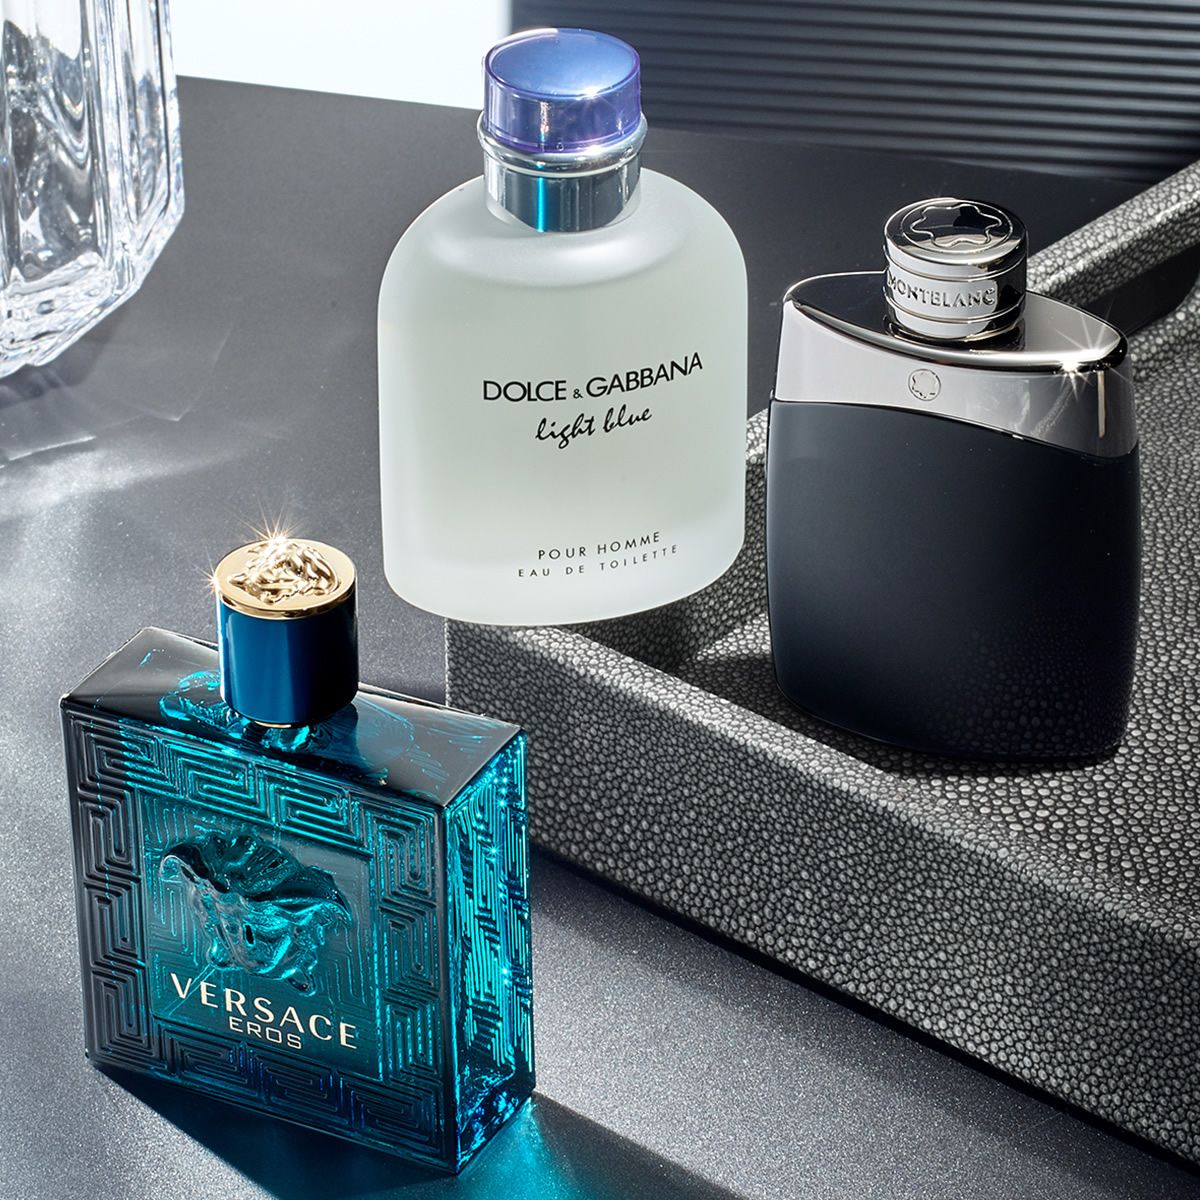 Cologne and Grooming